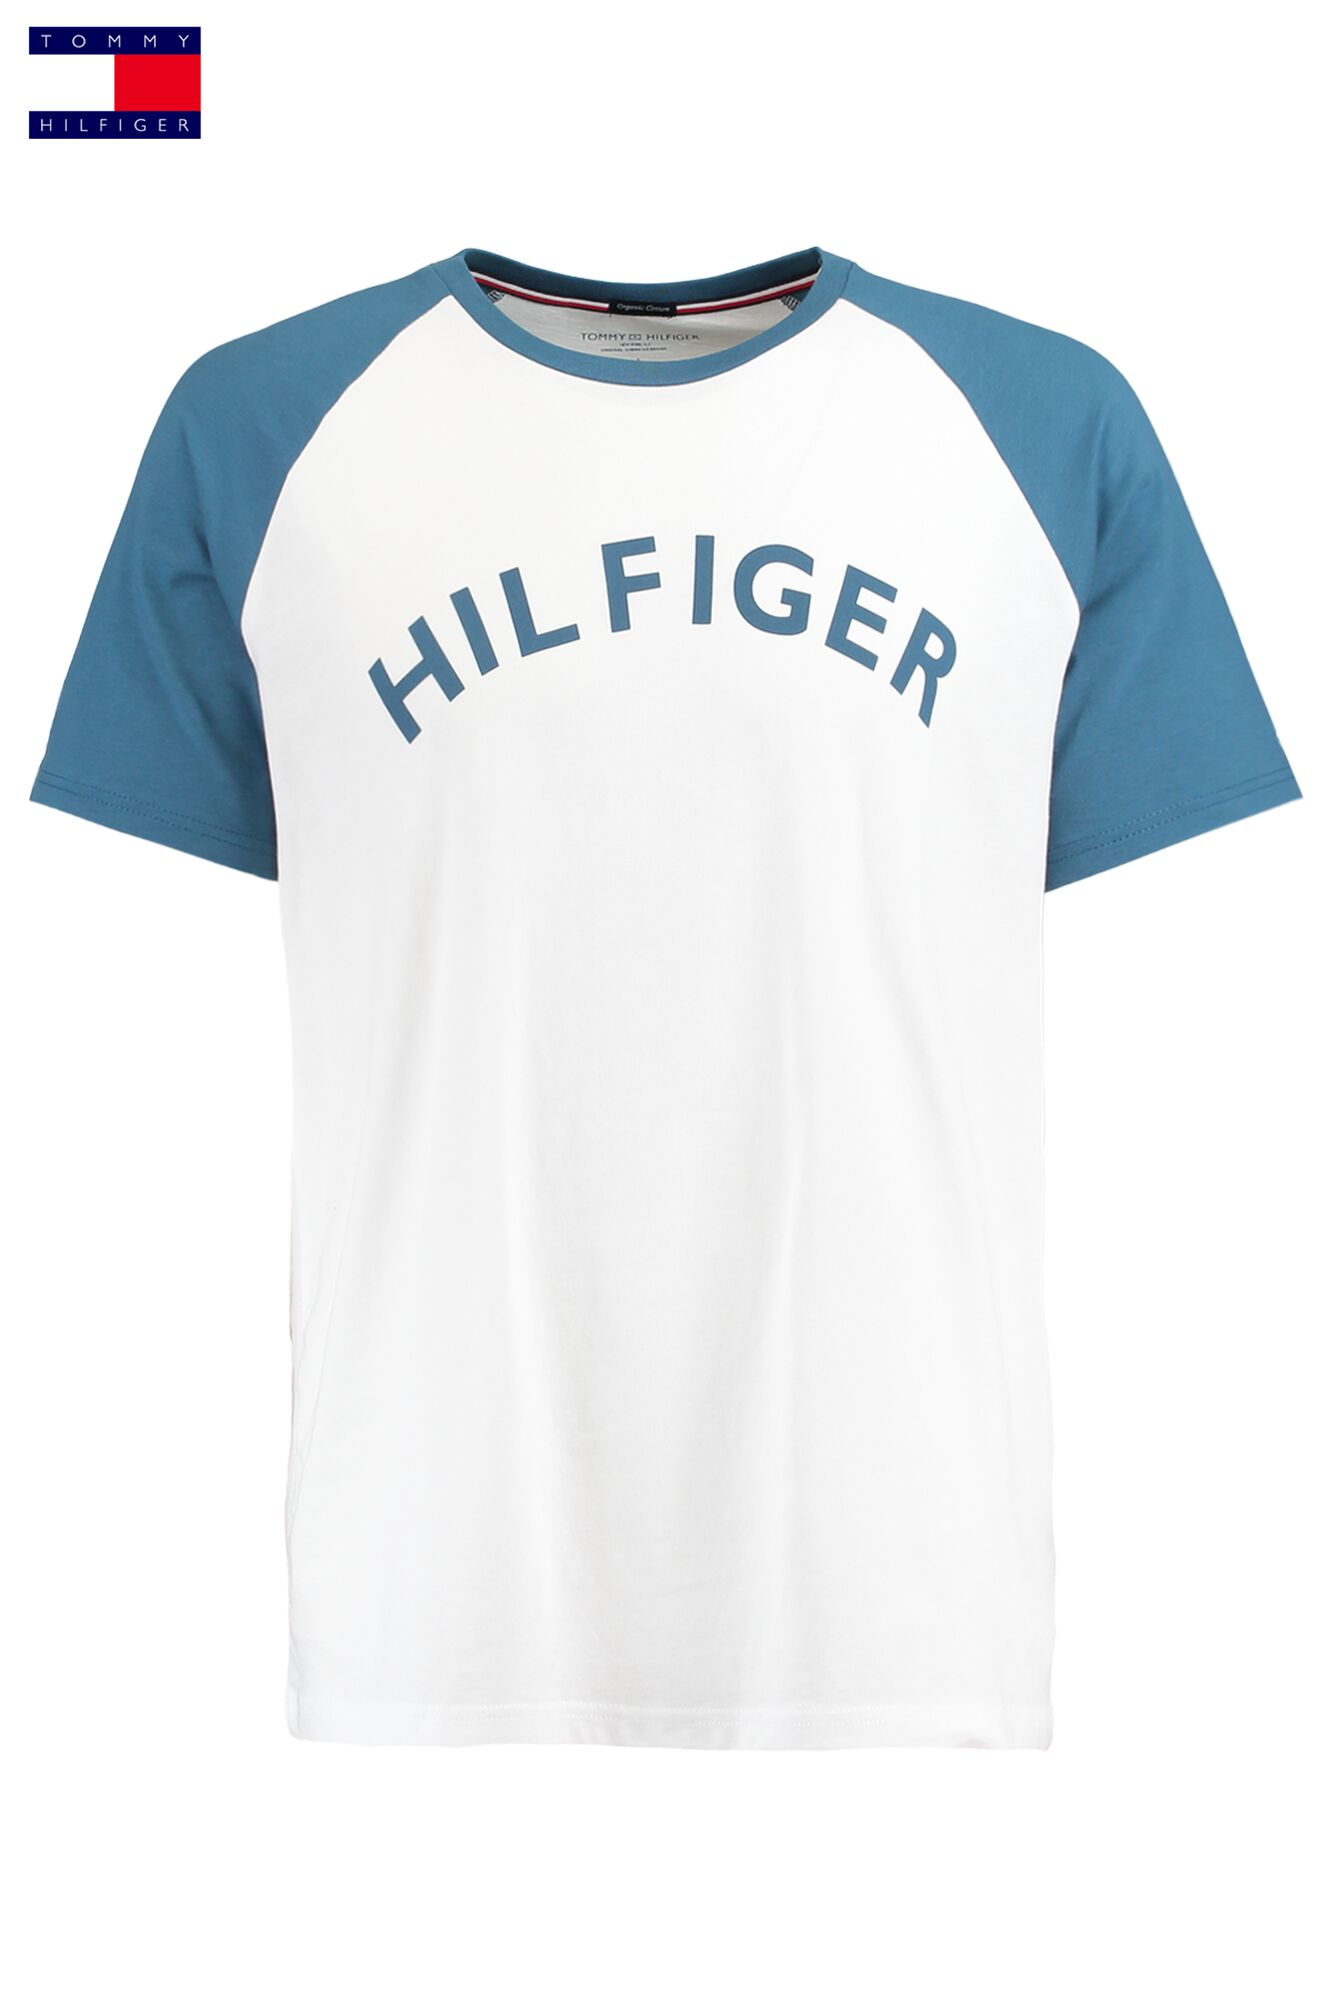 new styles cbc41 dc6c6 Men T-shirt Tommy Hilfiger White Buy Online